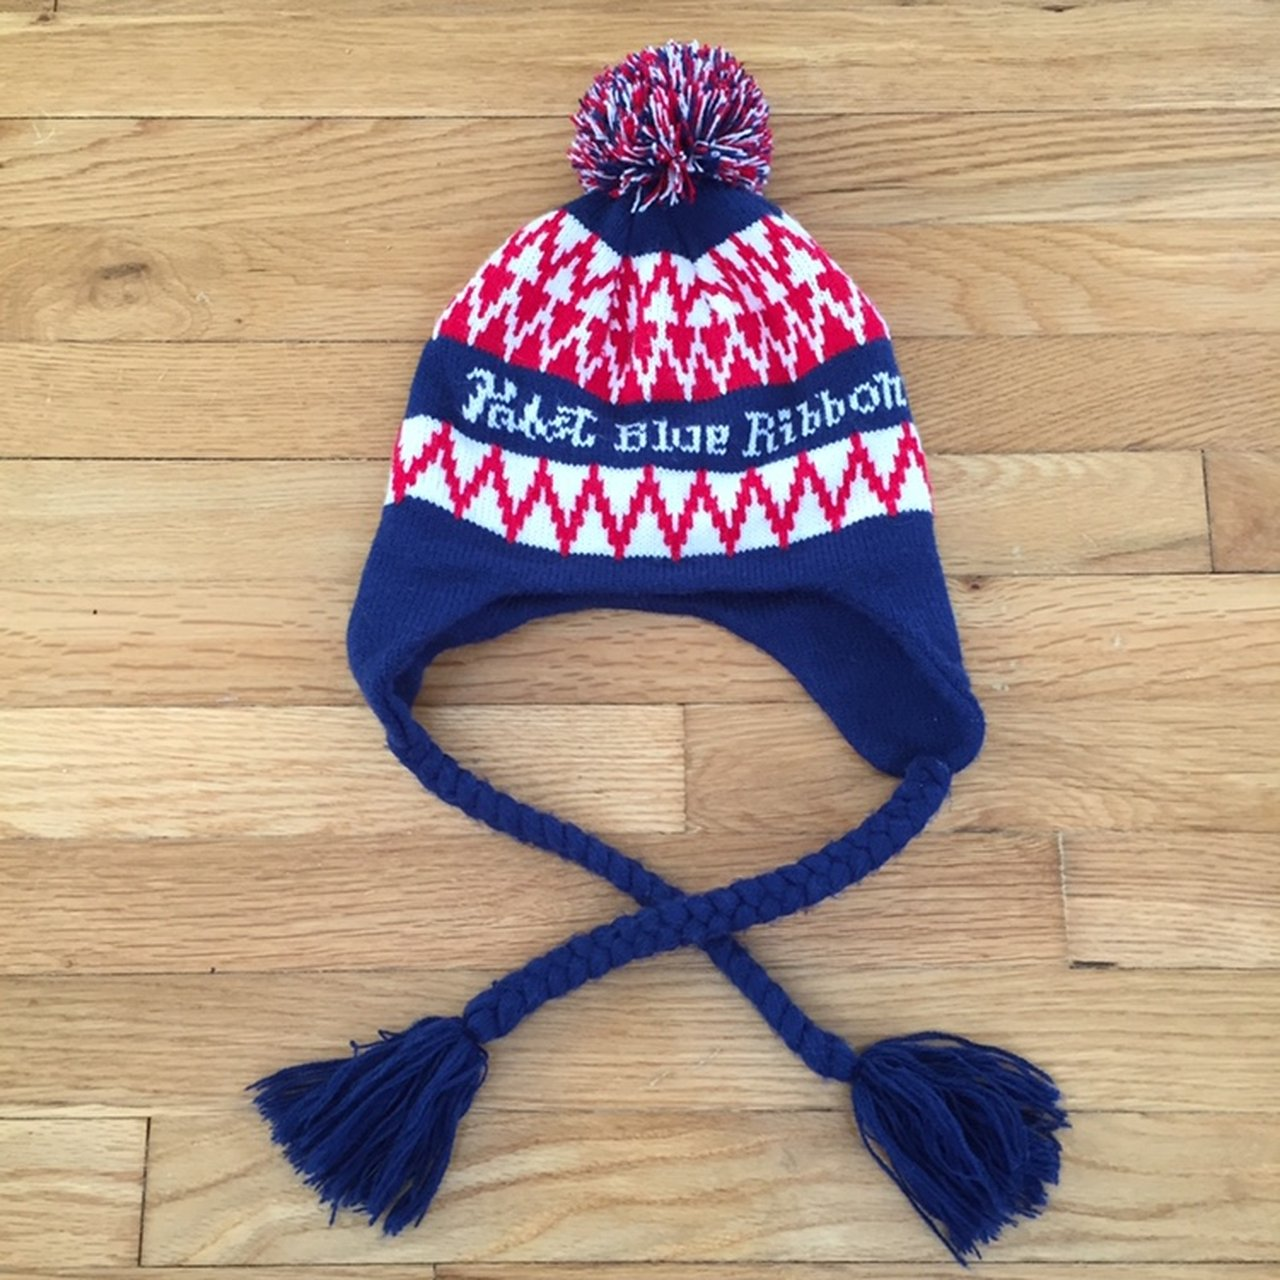 FREE SHIPPING! Pabst Blue Ribbon Pom Beanie! One size fits - Depop a21a0df90ed